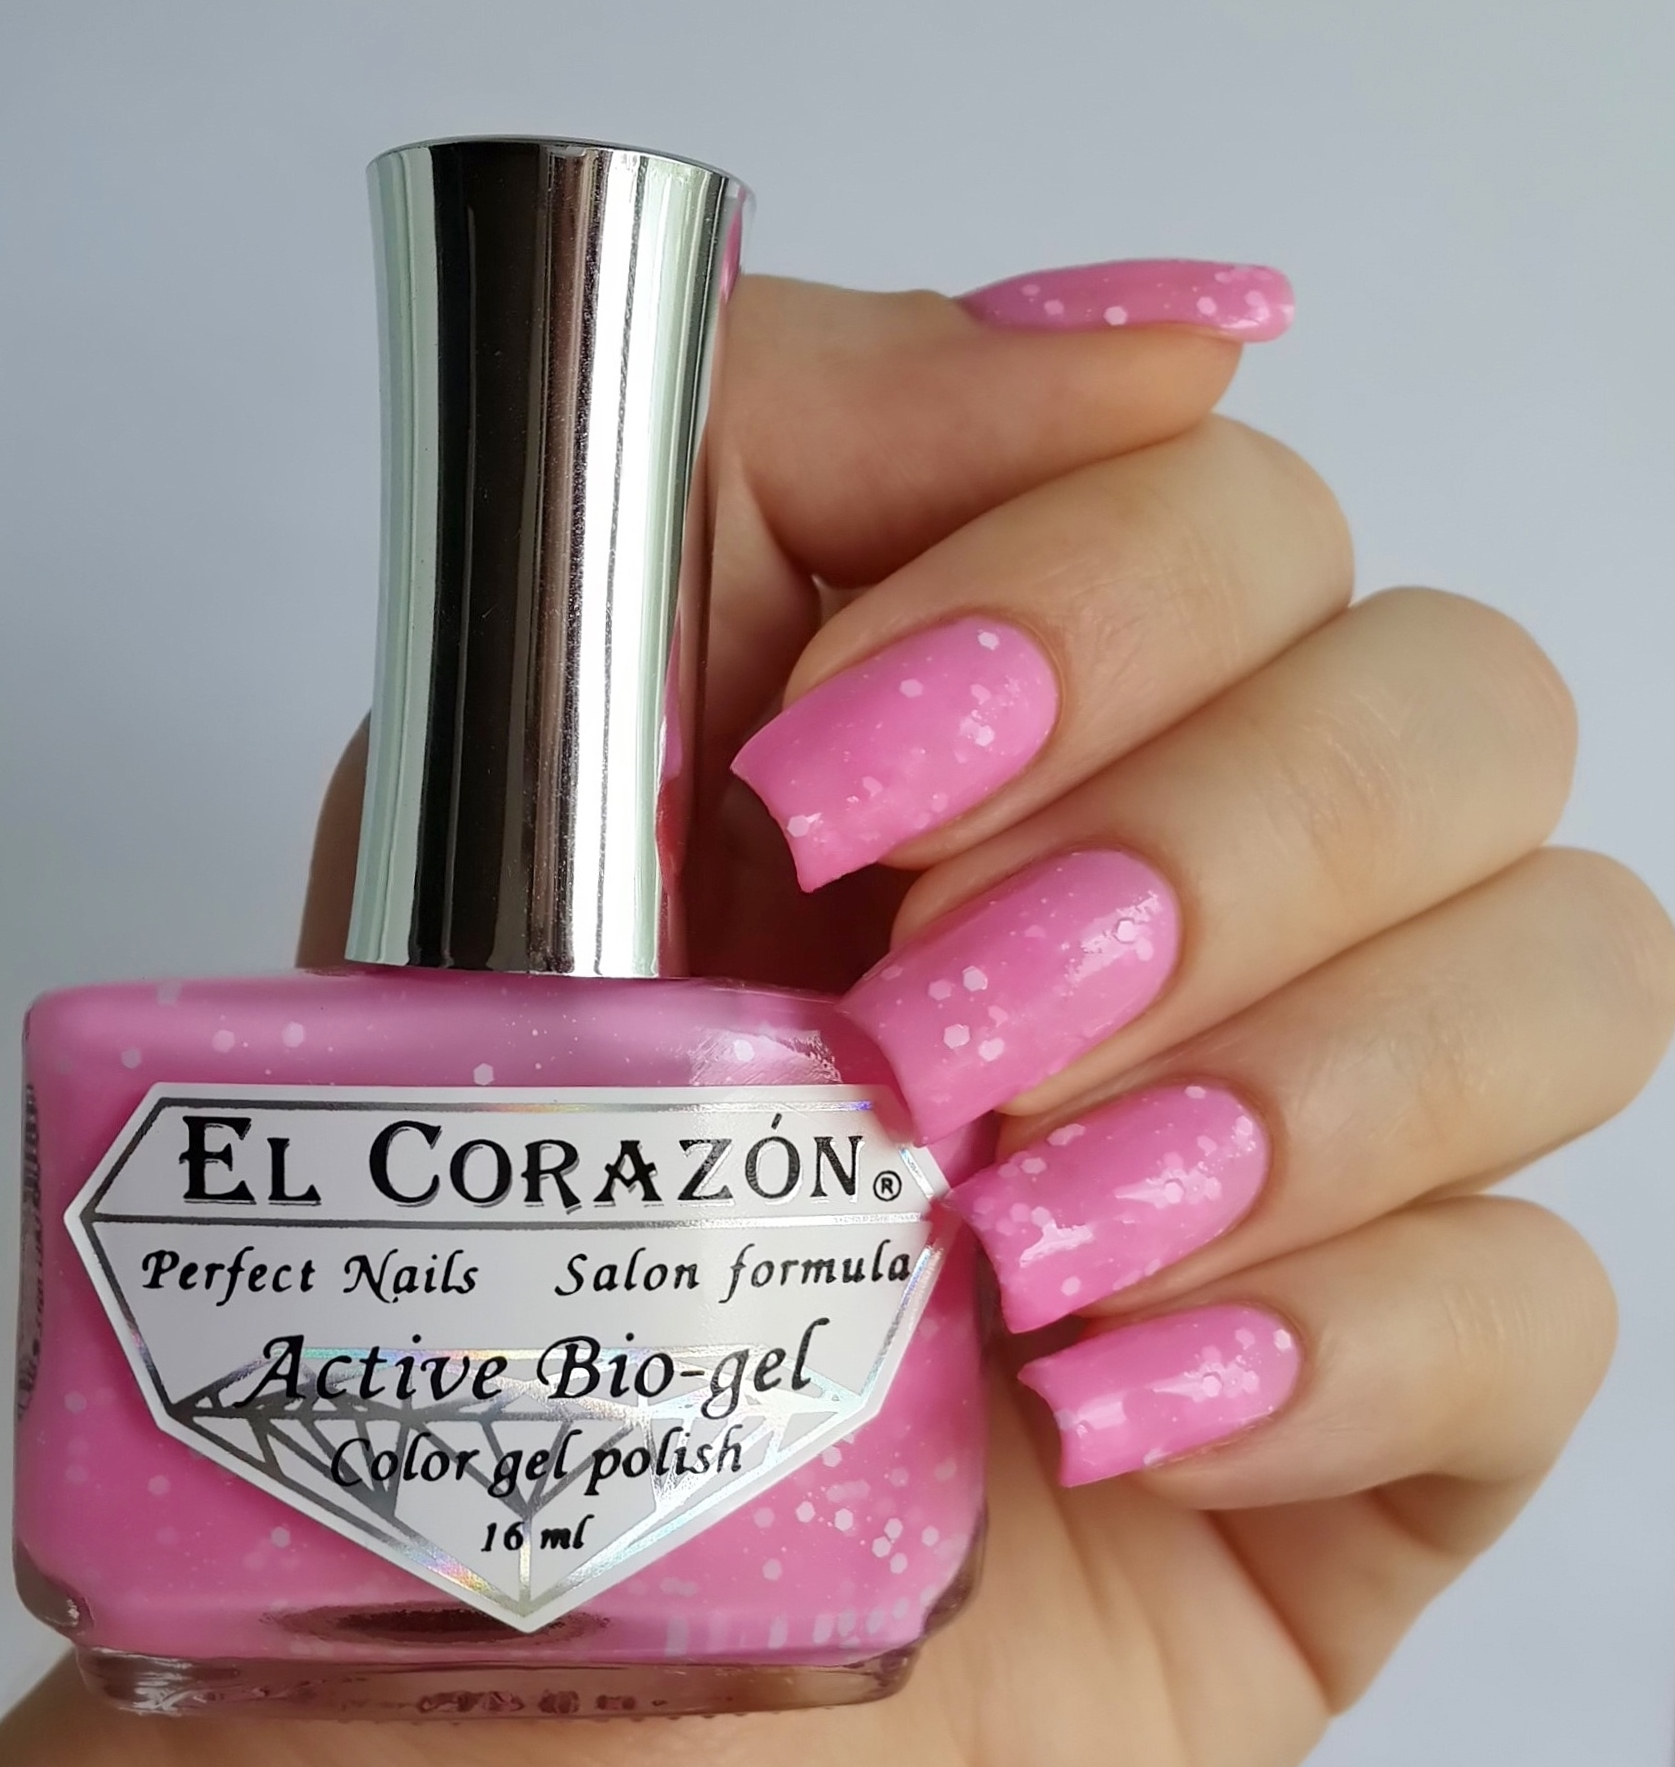 EL Corazon Active Bio-gel Color gel polish Fashion girl on a party №423/206